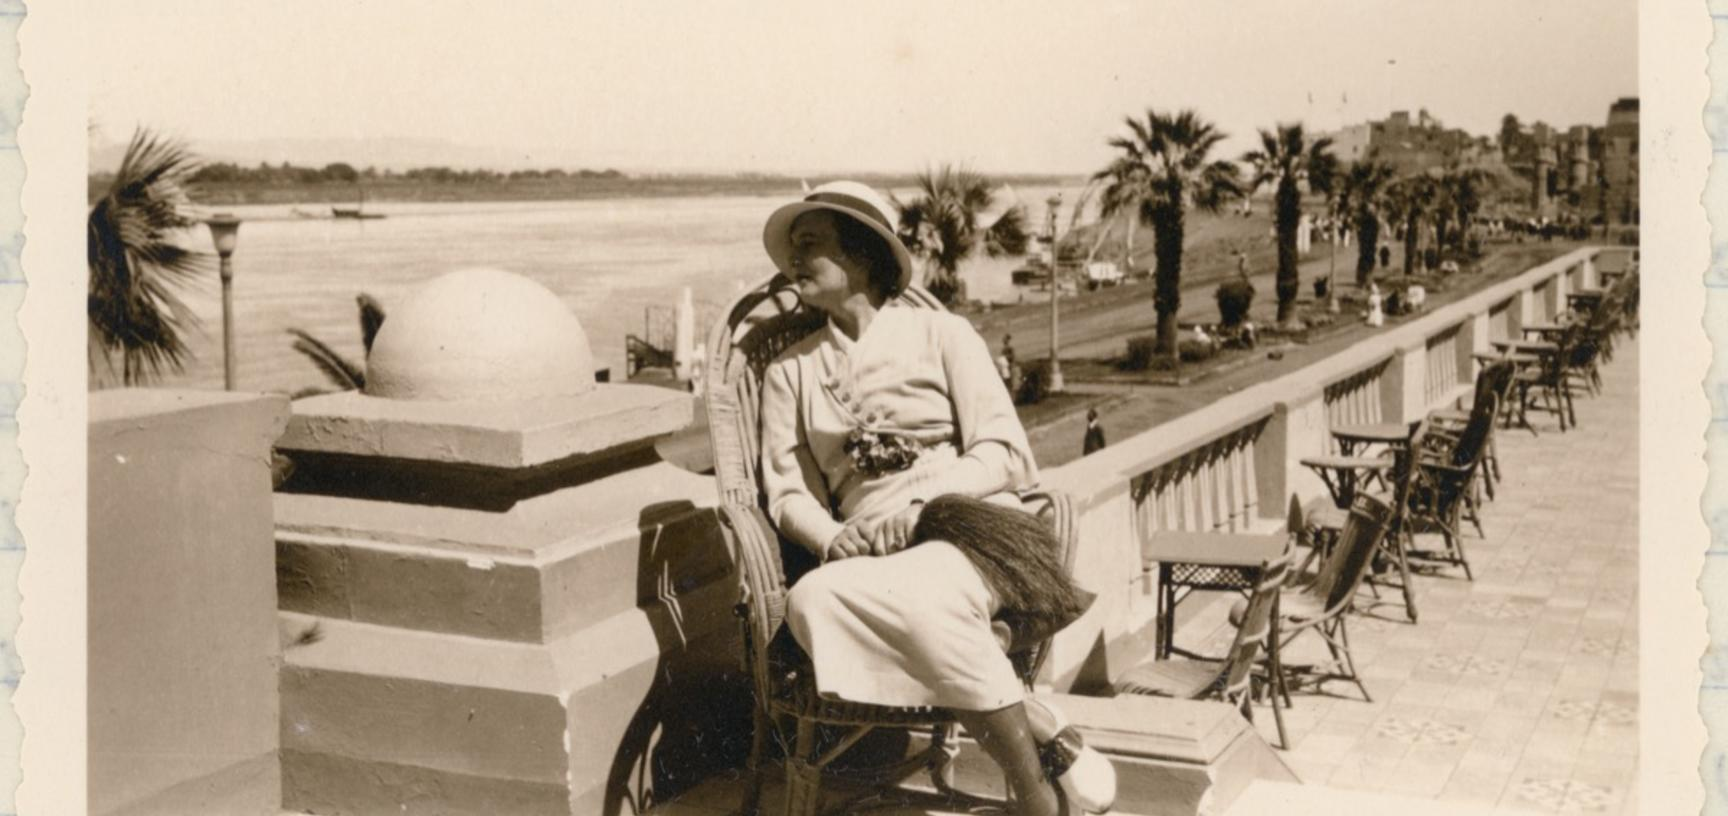 Portrait of Ellen Ettlinger, pictured sitting on a hotel terrace alongside the River Nile. Luxor, Egypt. Photographer unknown. 17 March 1935.